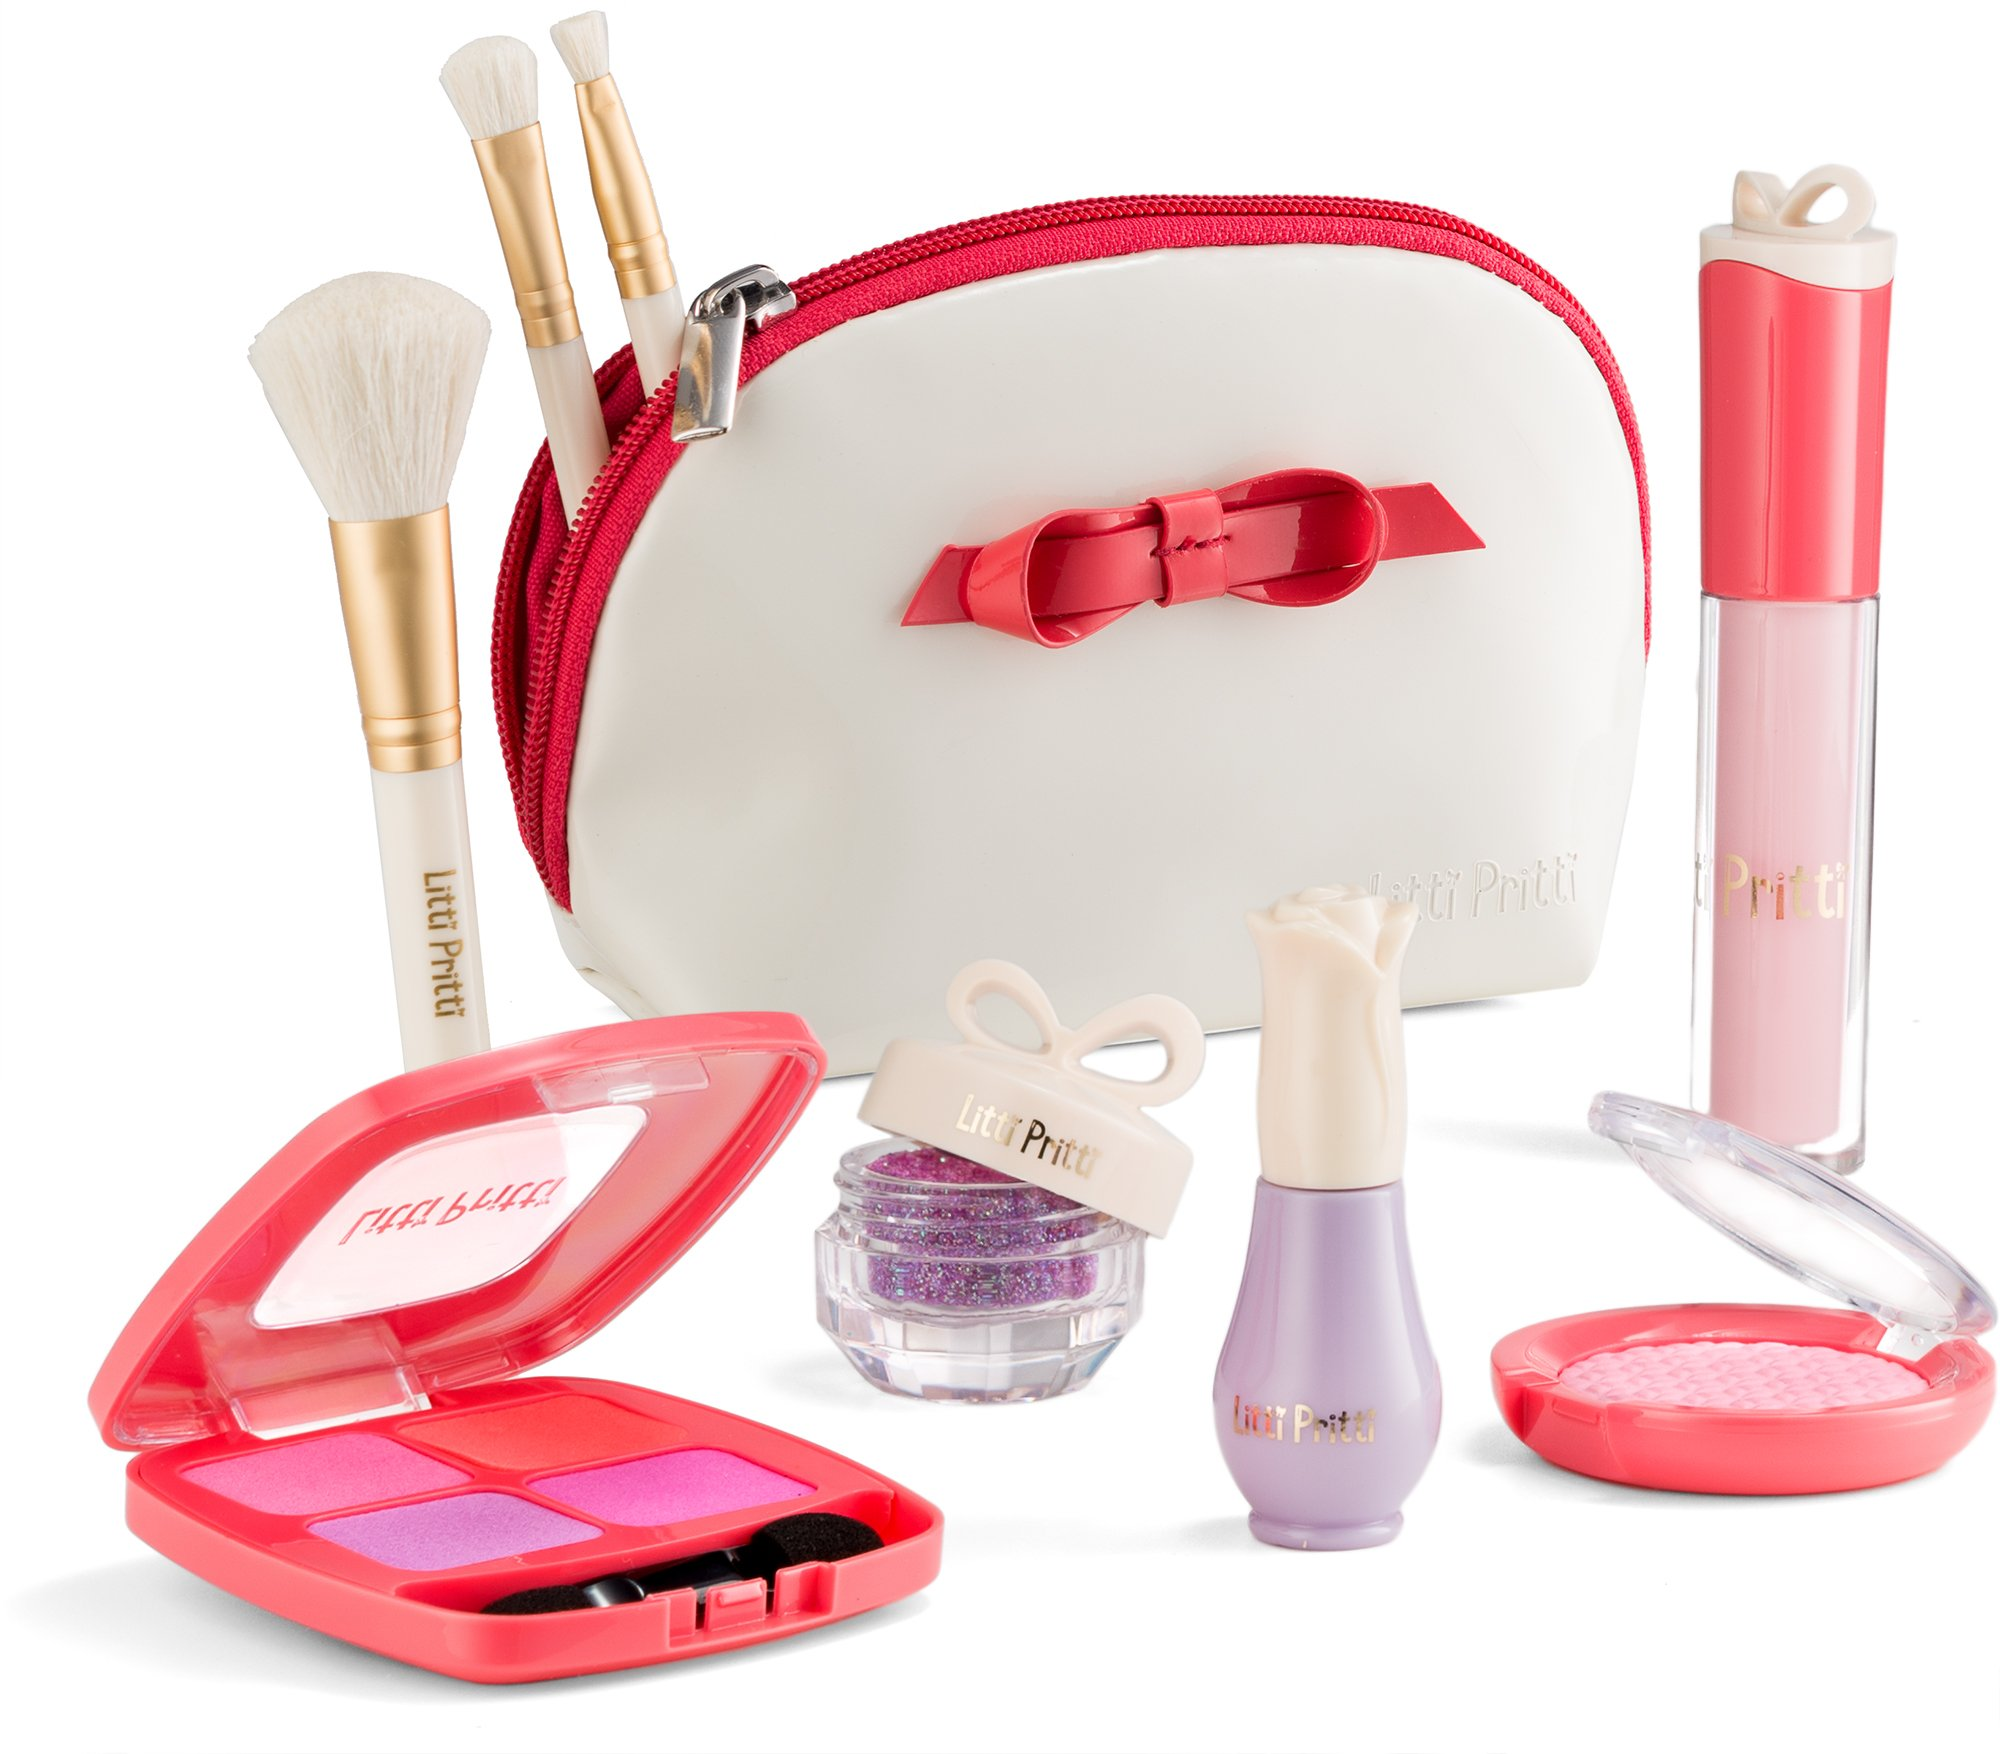 Litti Pritti Pretend Play Makeup for Girls Set - 9 Piece Cosmetic Play Makeup Kit - PU Leather Case